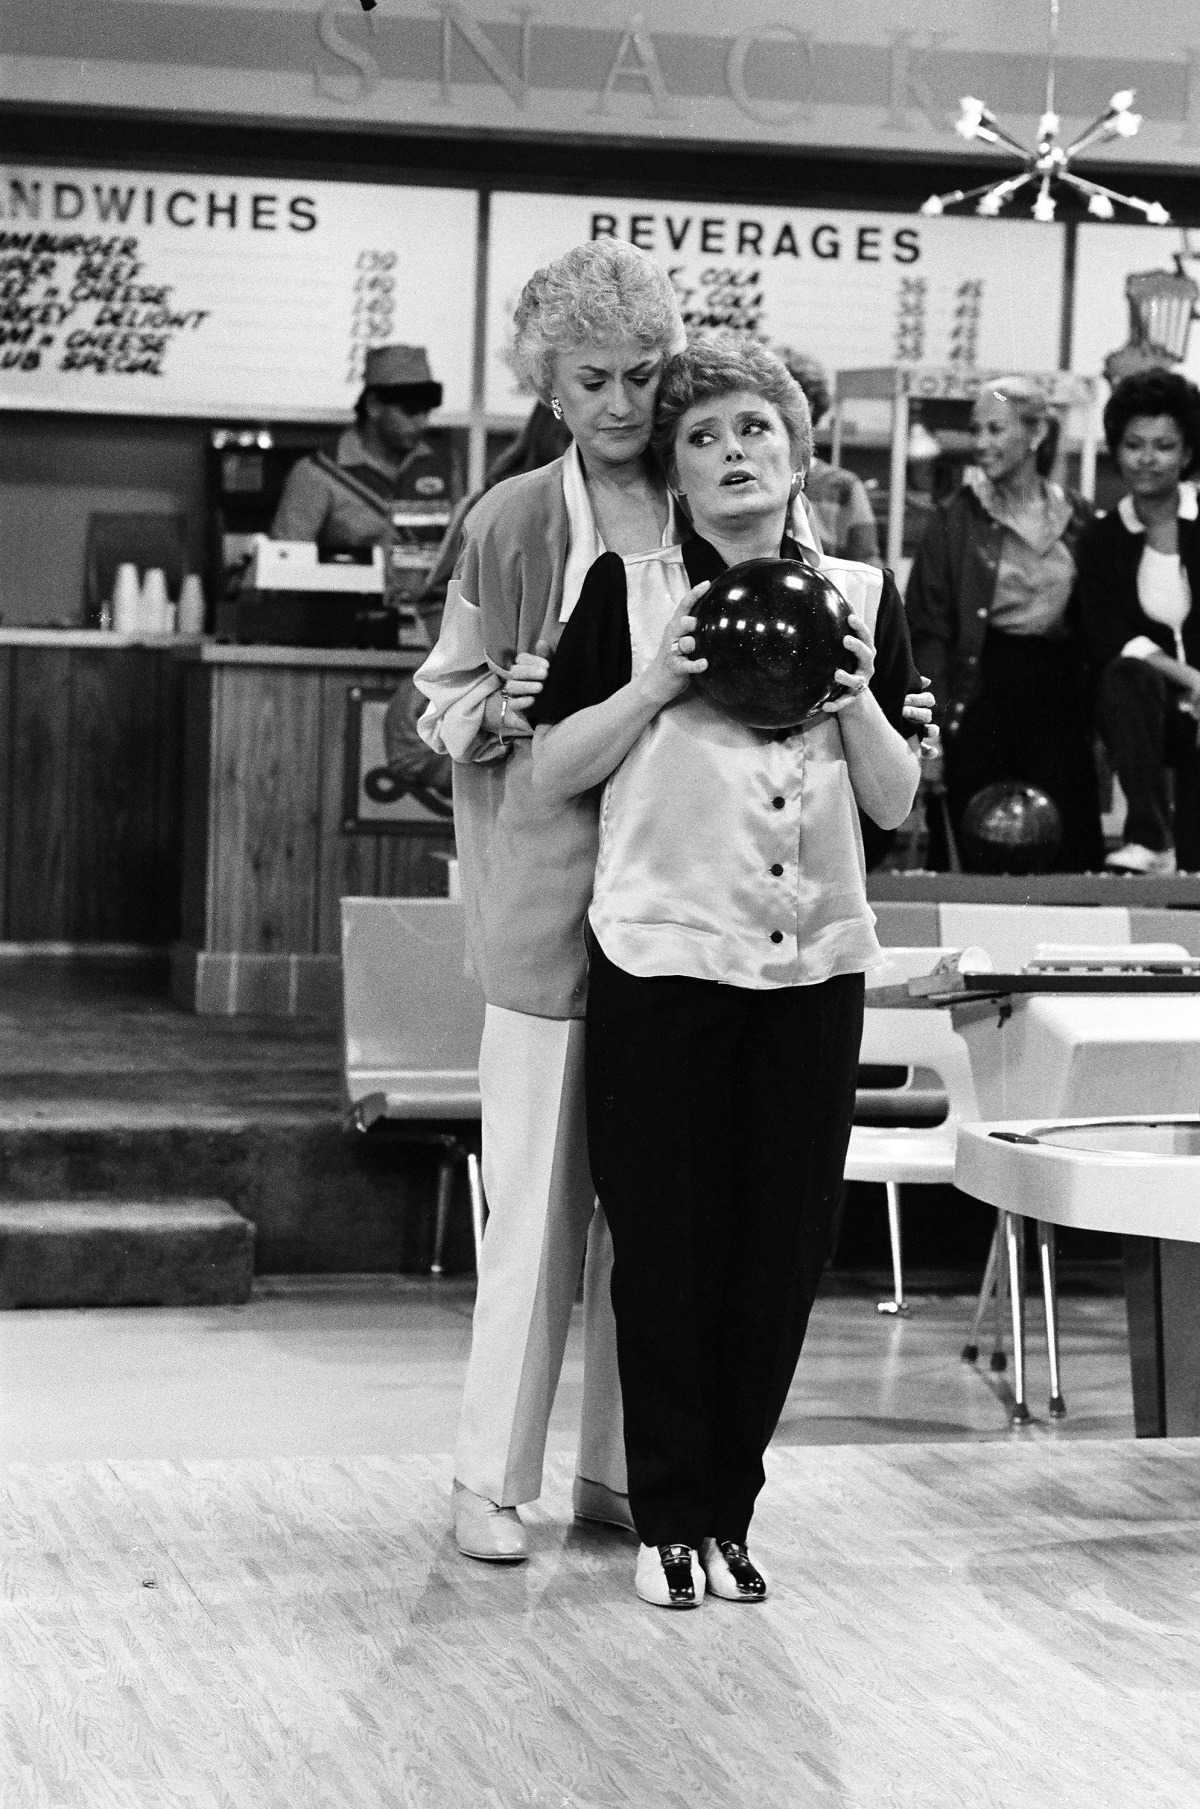 Bea Arthur and Rue McClanahan